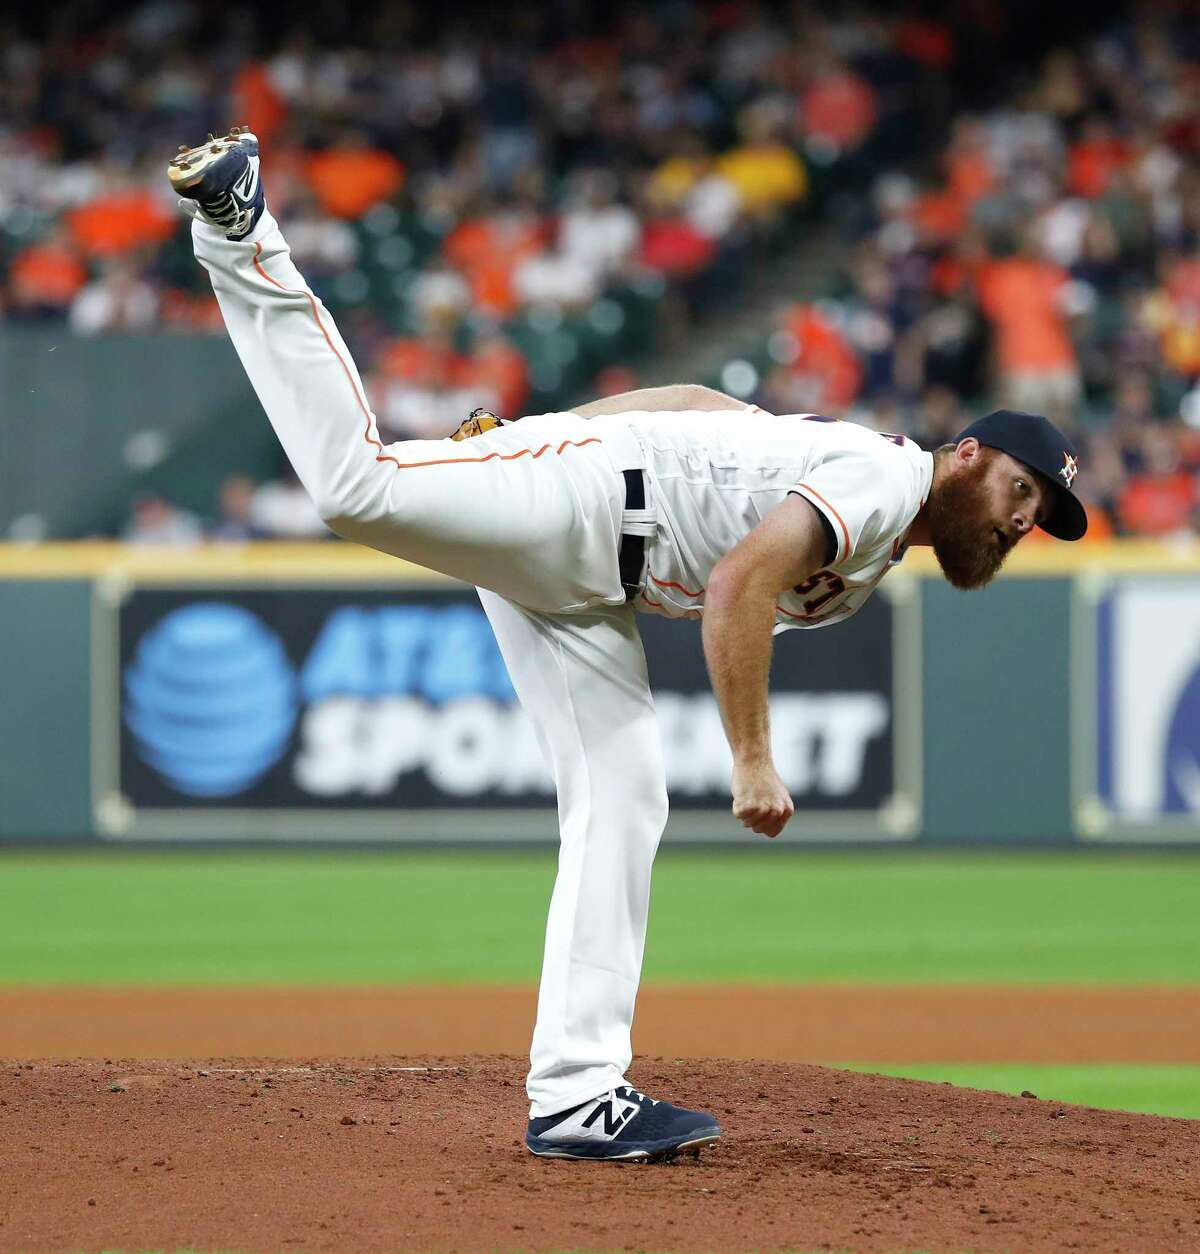 Houston Astros Cy Sneed (67) replaces Brad Peacock during the fourth inning of an MLB baseball game at Minute Maid Park, Thursday, June 27, 2019, in Houston.